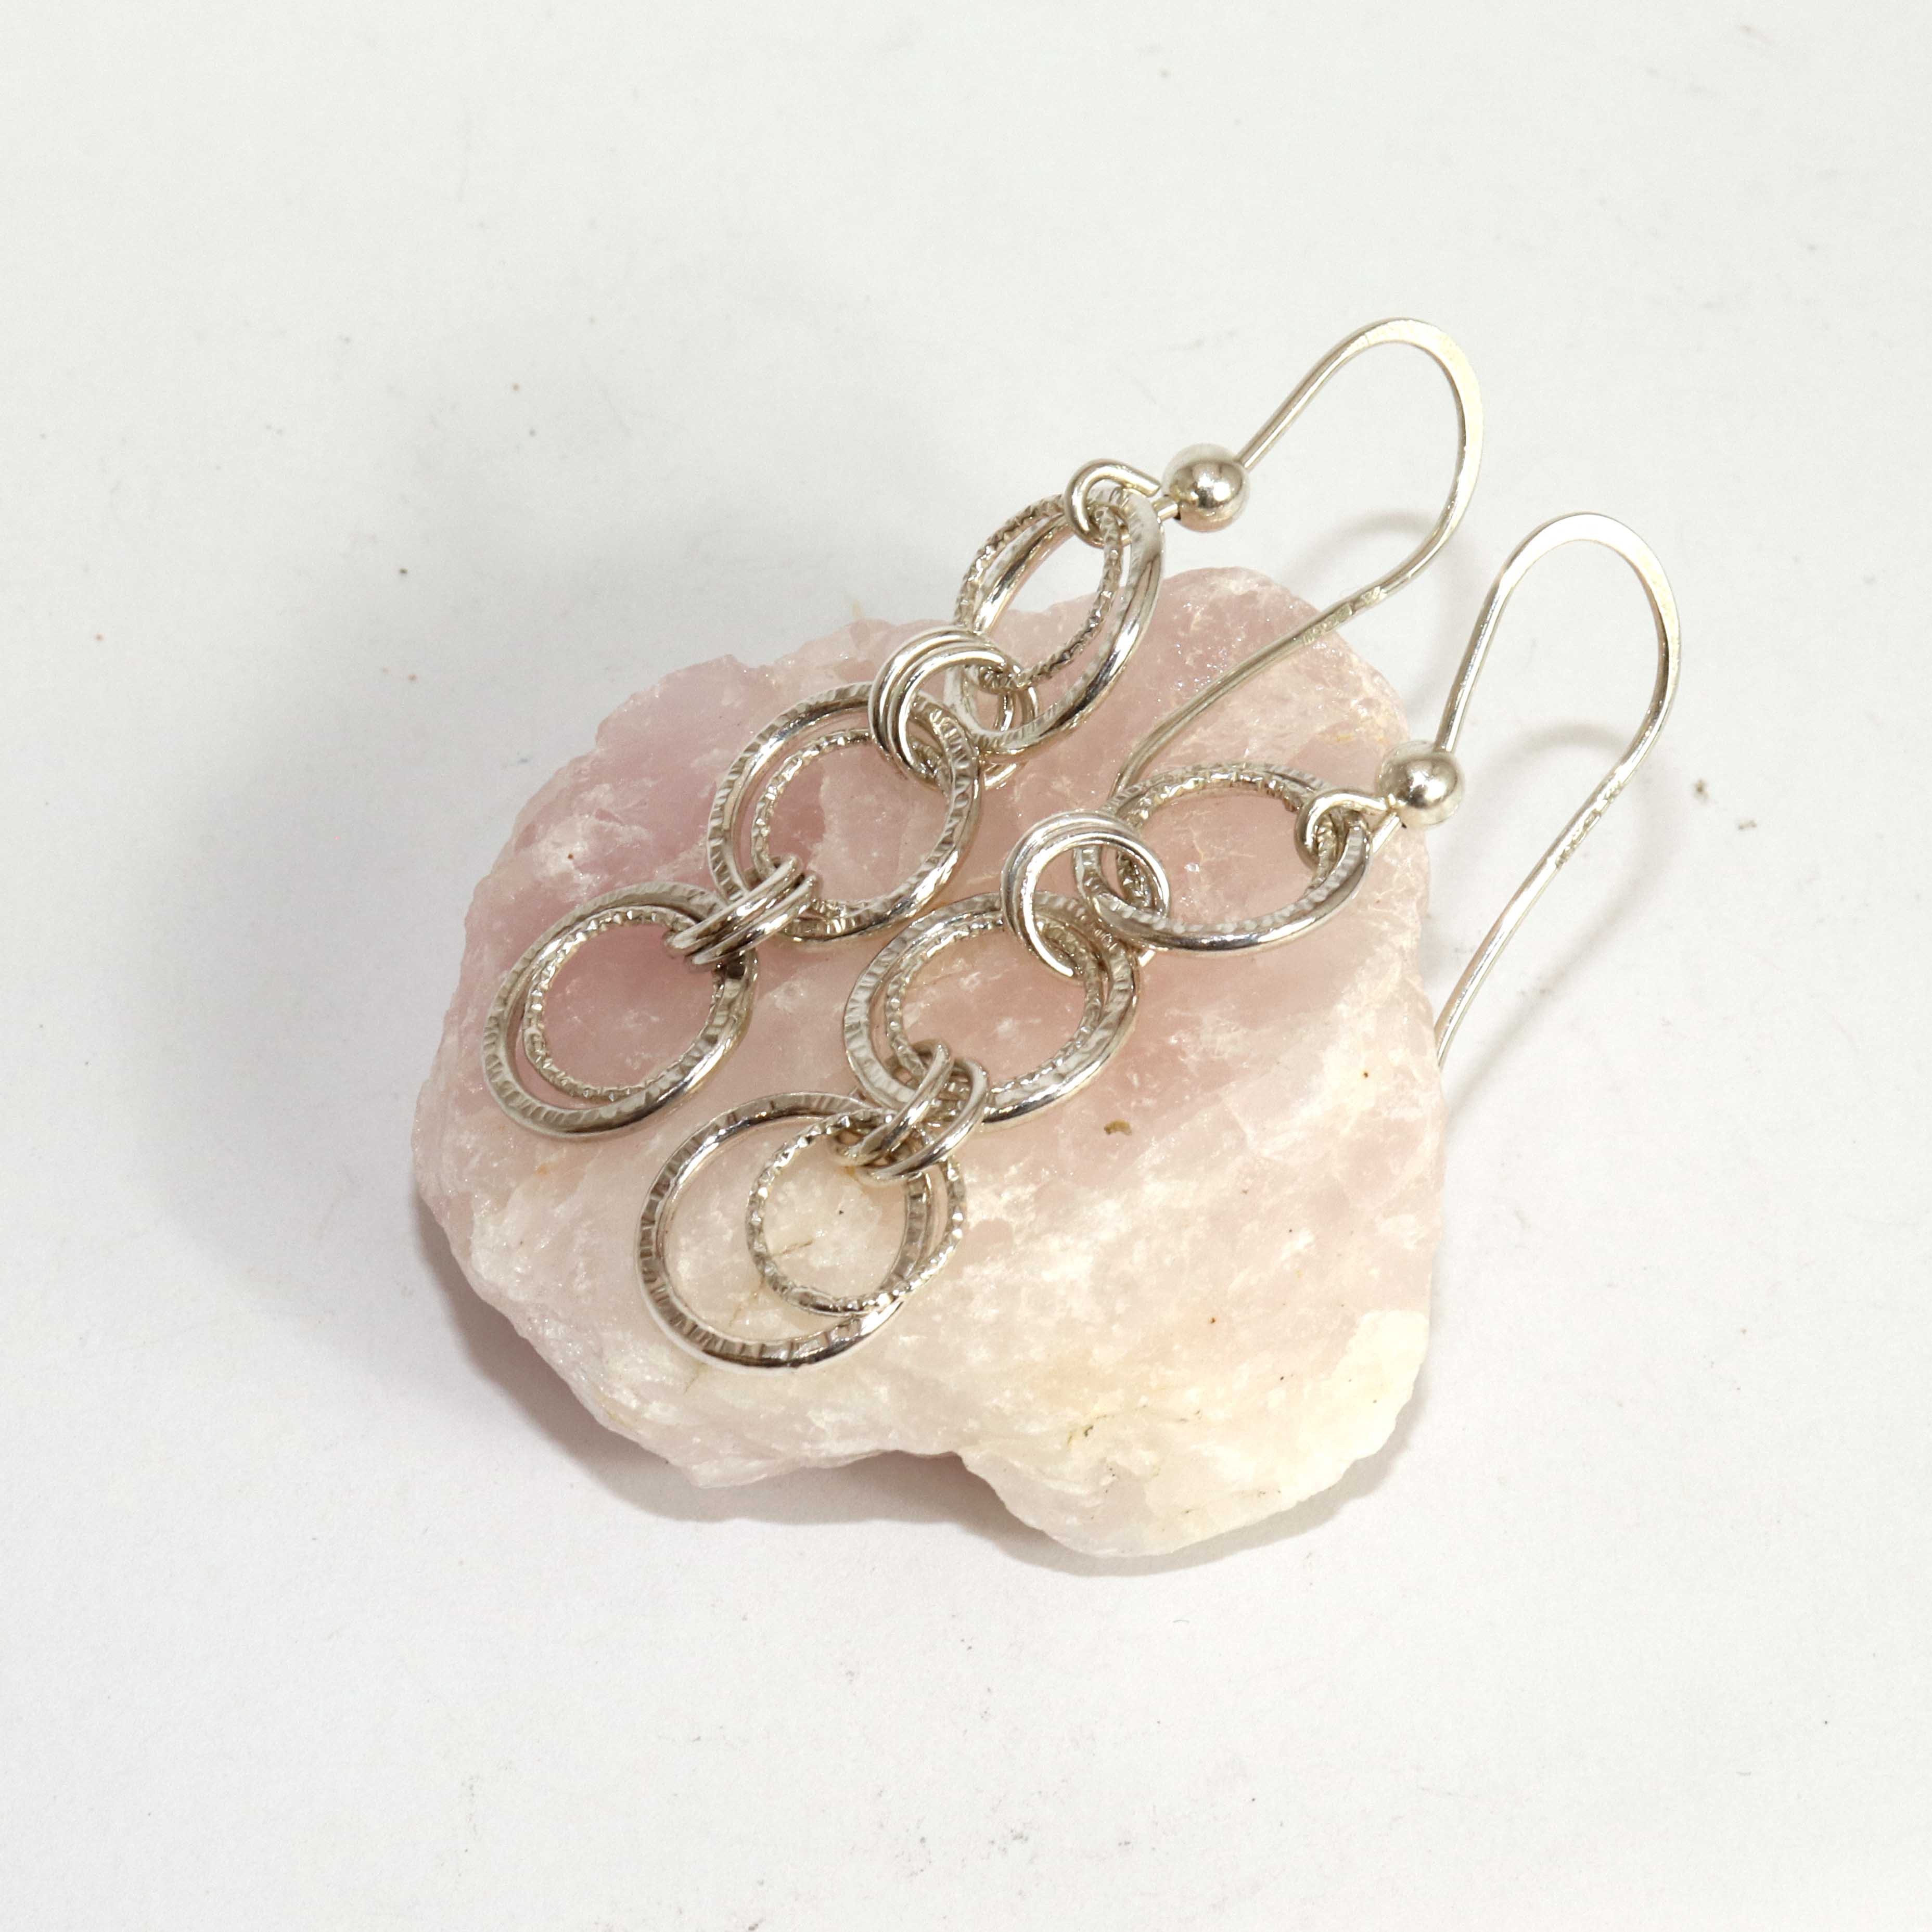 Textured Handmade Double Link Chain Drop Earrings